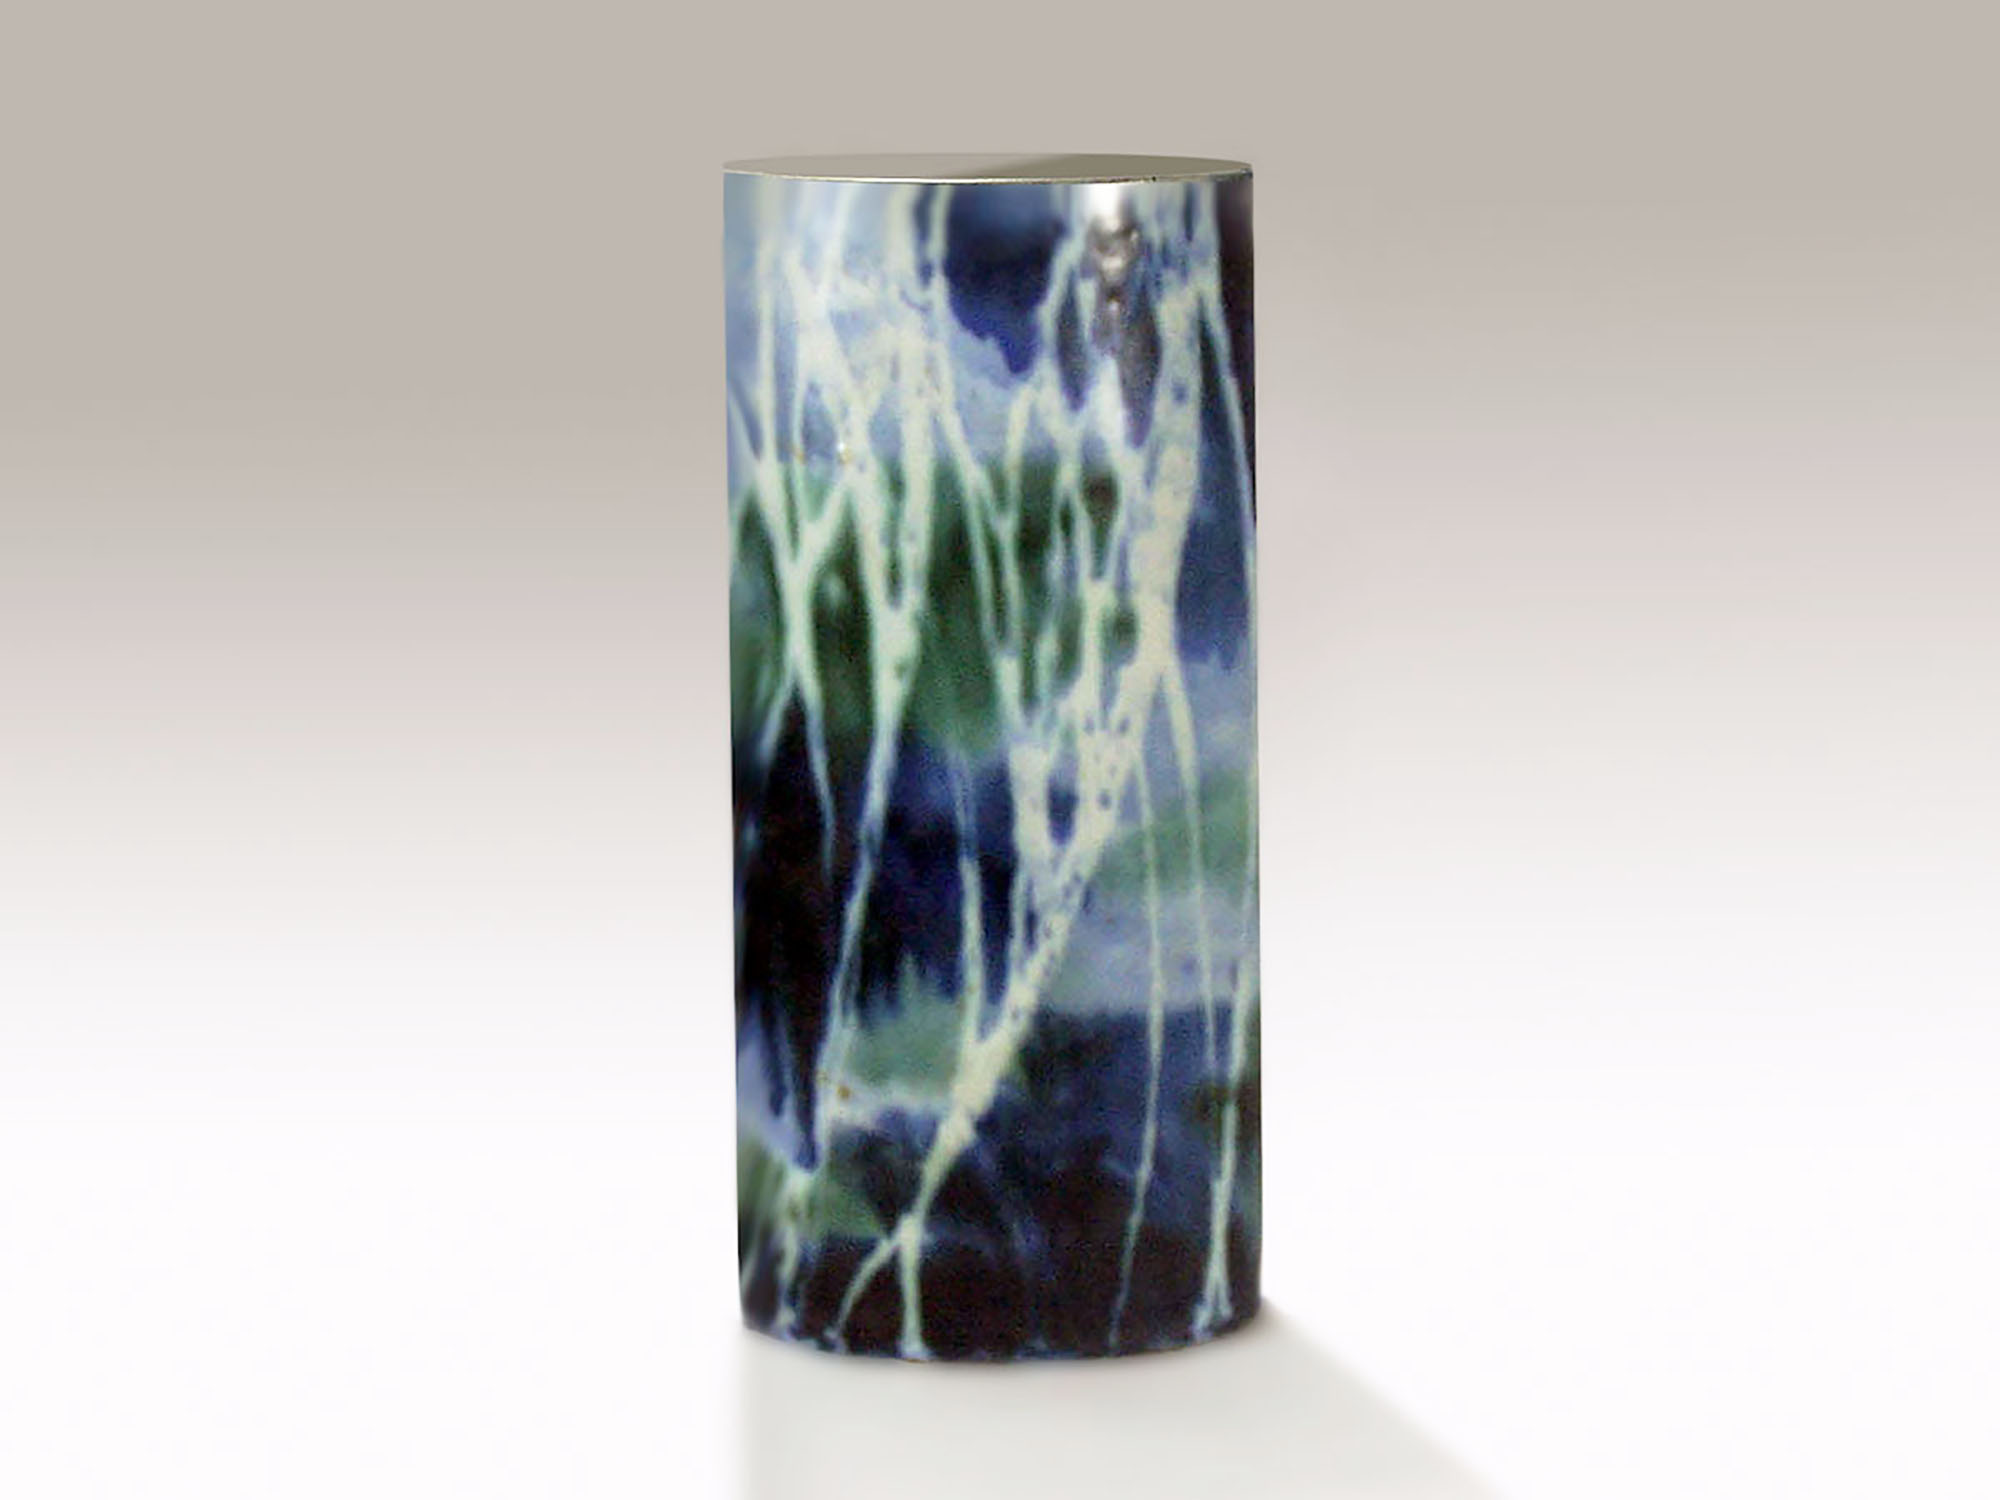 Talll Oval Cylinder Vase in Blue Green Birch Tee by Brenda